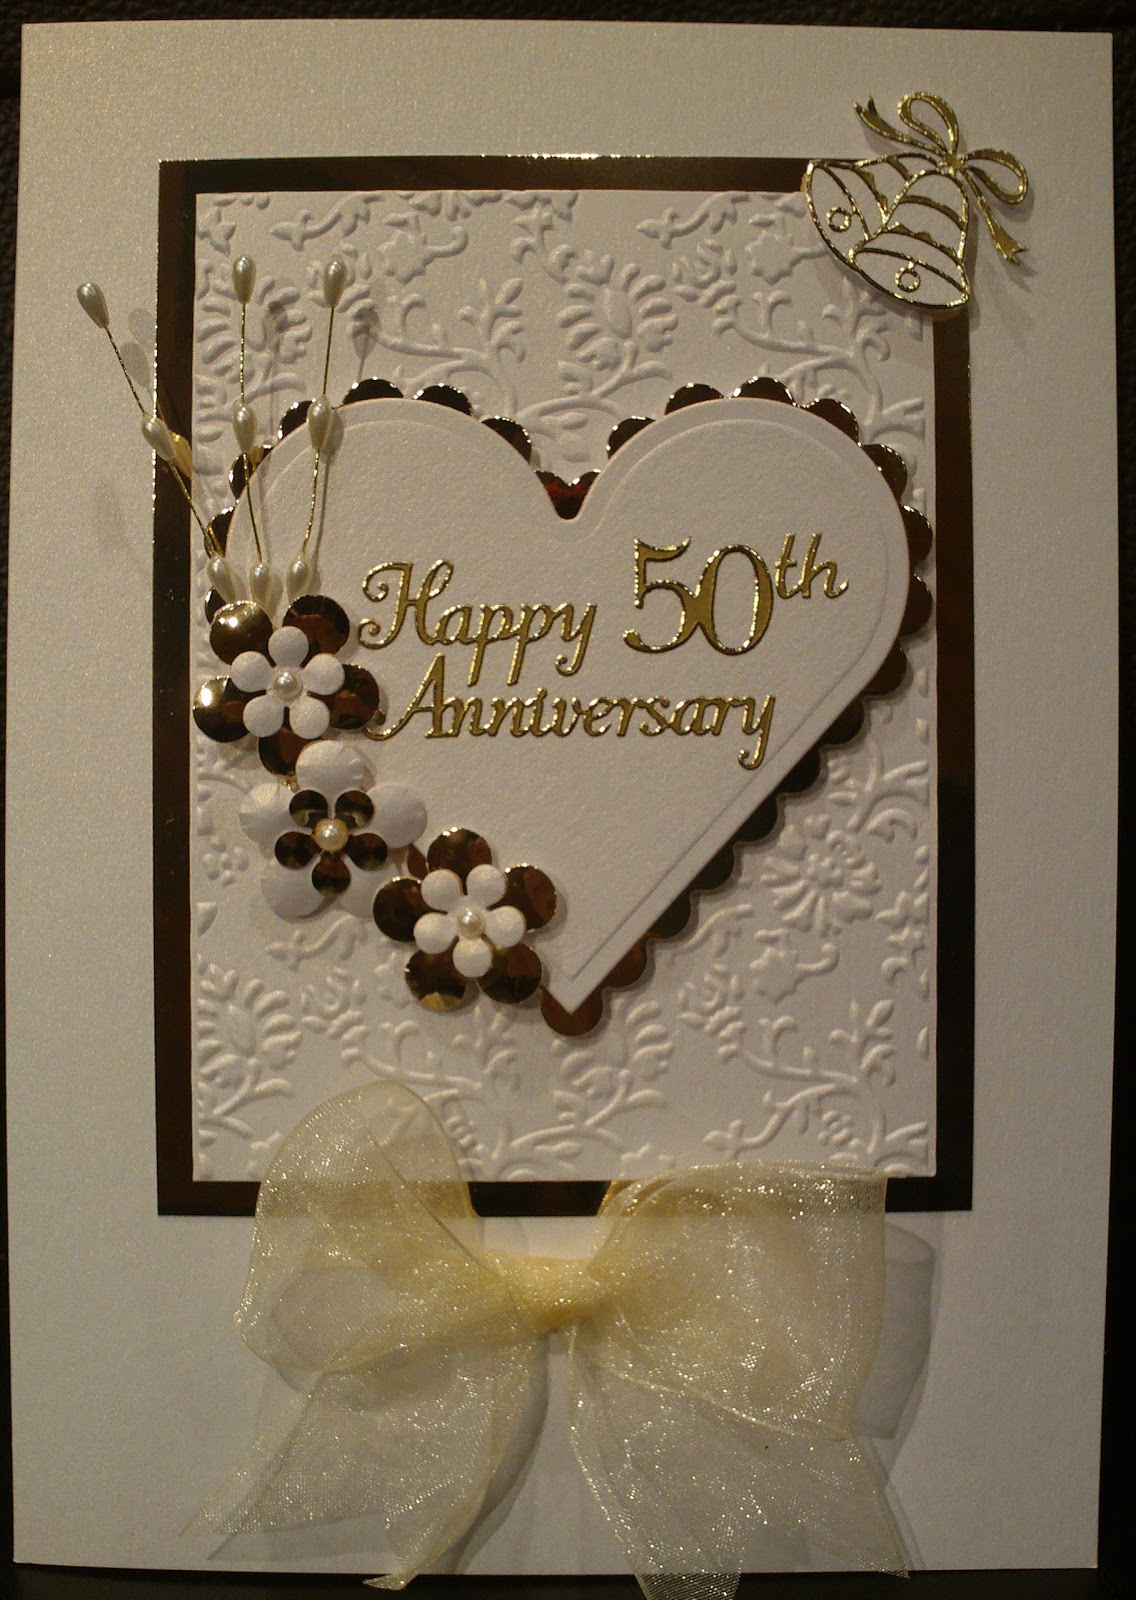 cards 'n' crafts golden anniversary card